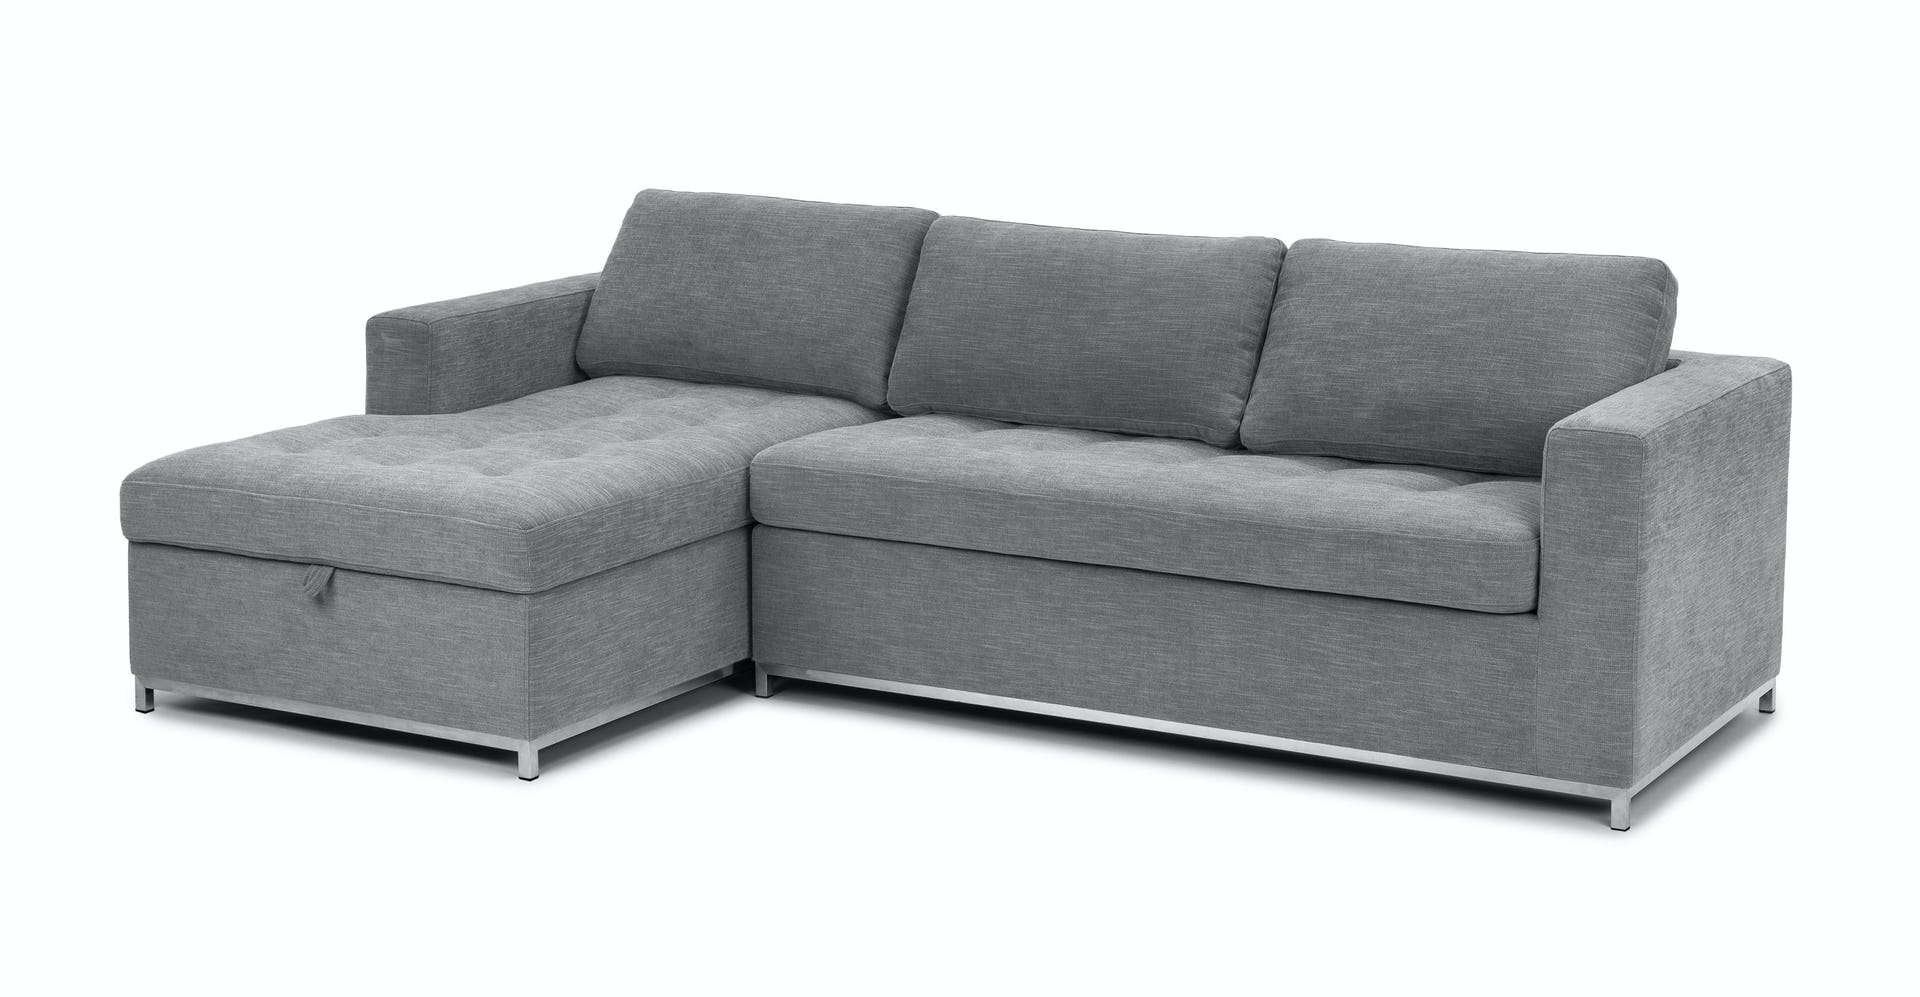 Soma Dawn Gray Left Sofa Bed